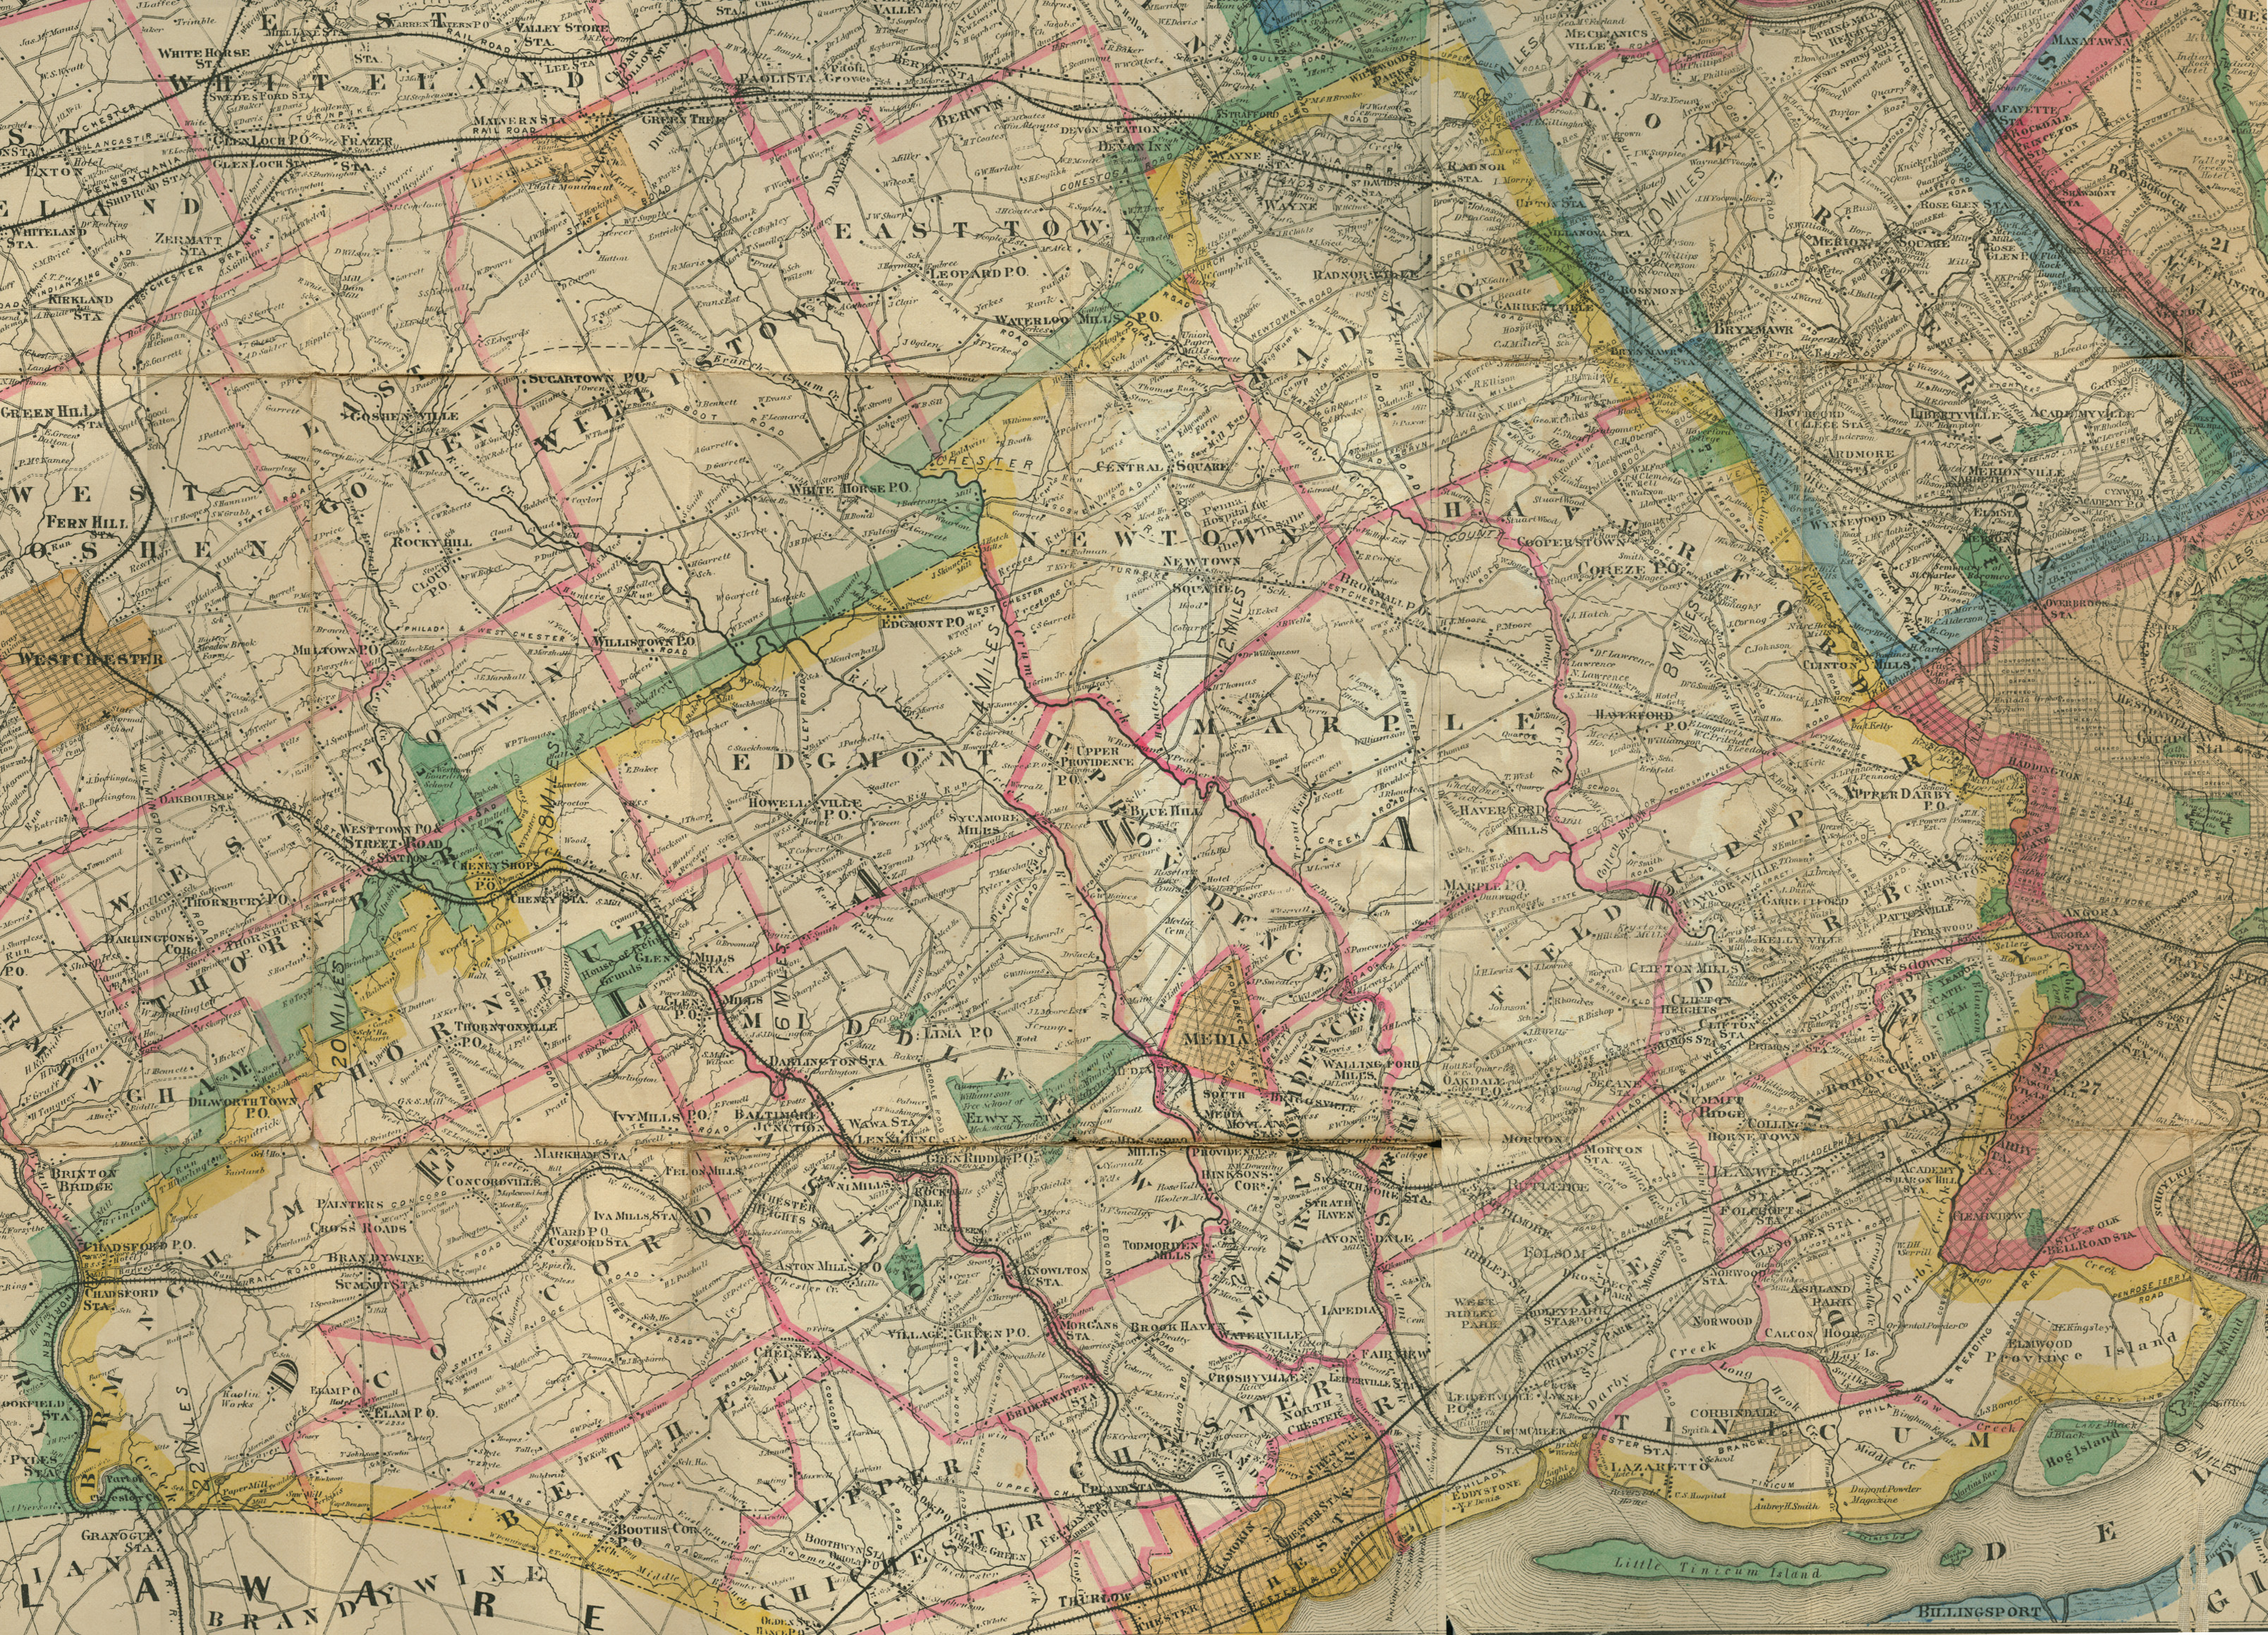 Driving Map Of Delaware County And Vicinity C 1900